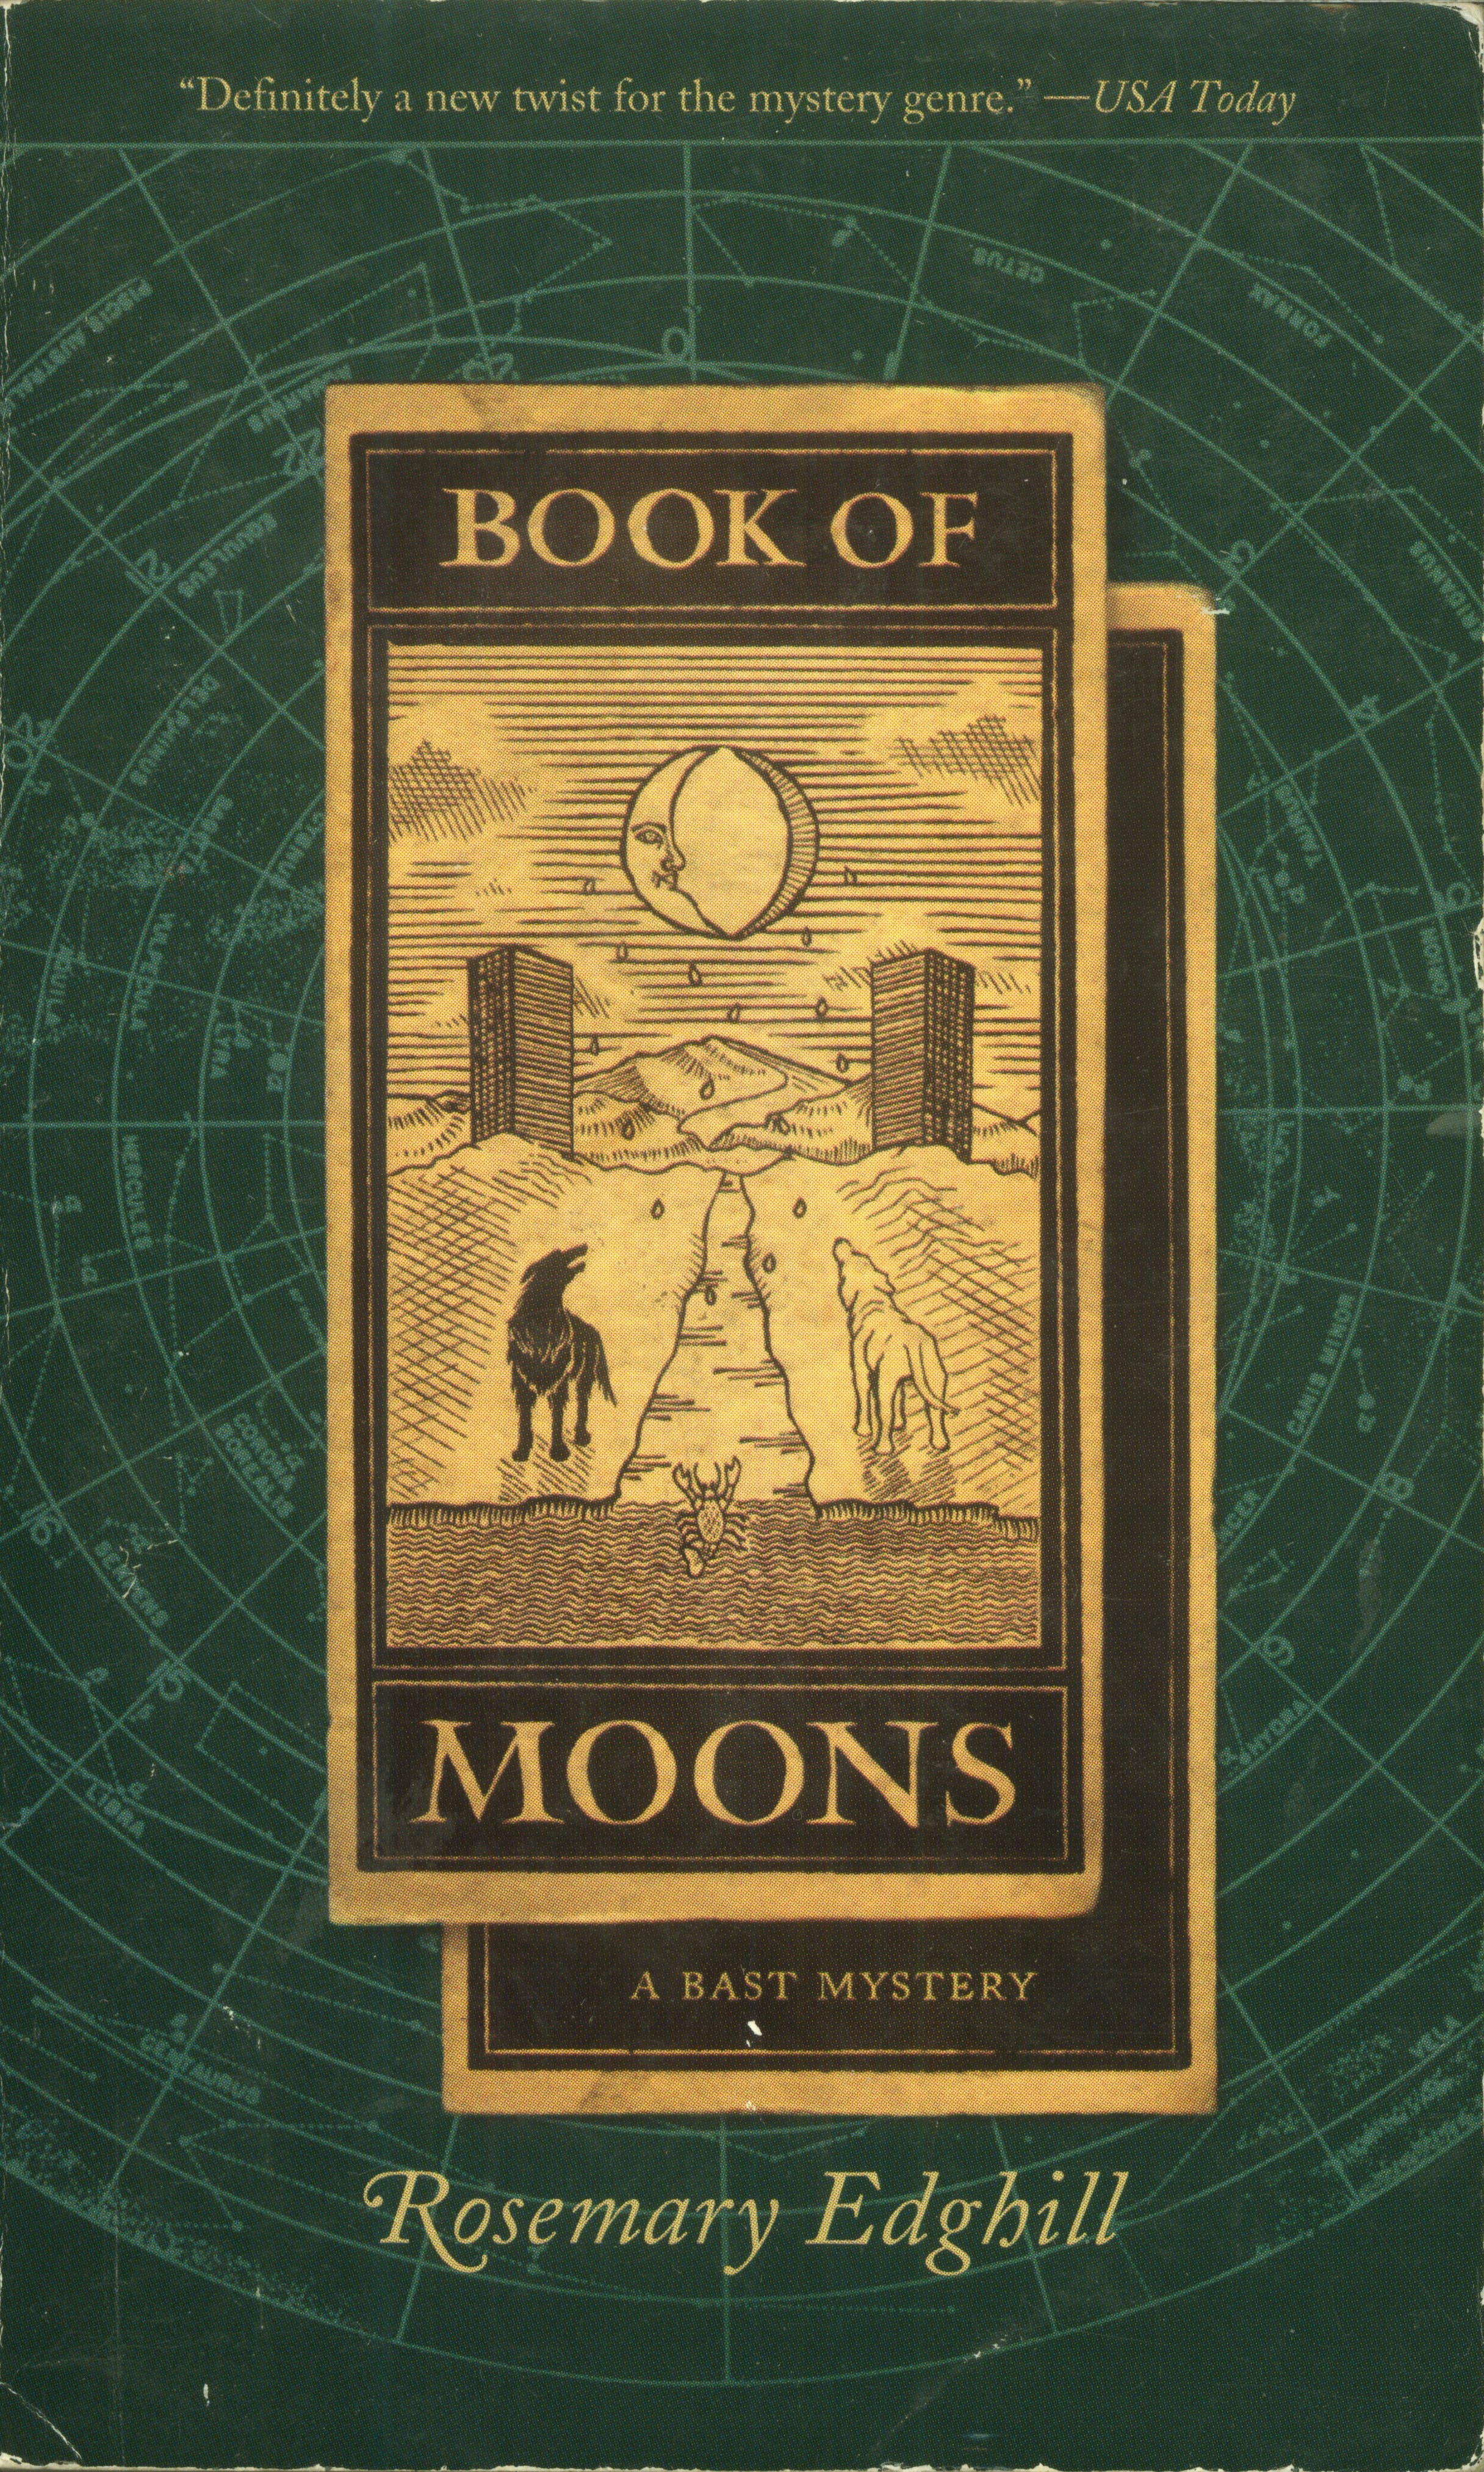 Image of Book of Moons